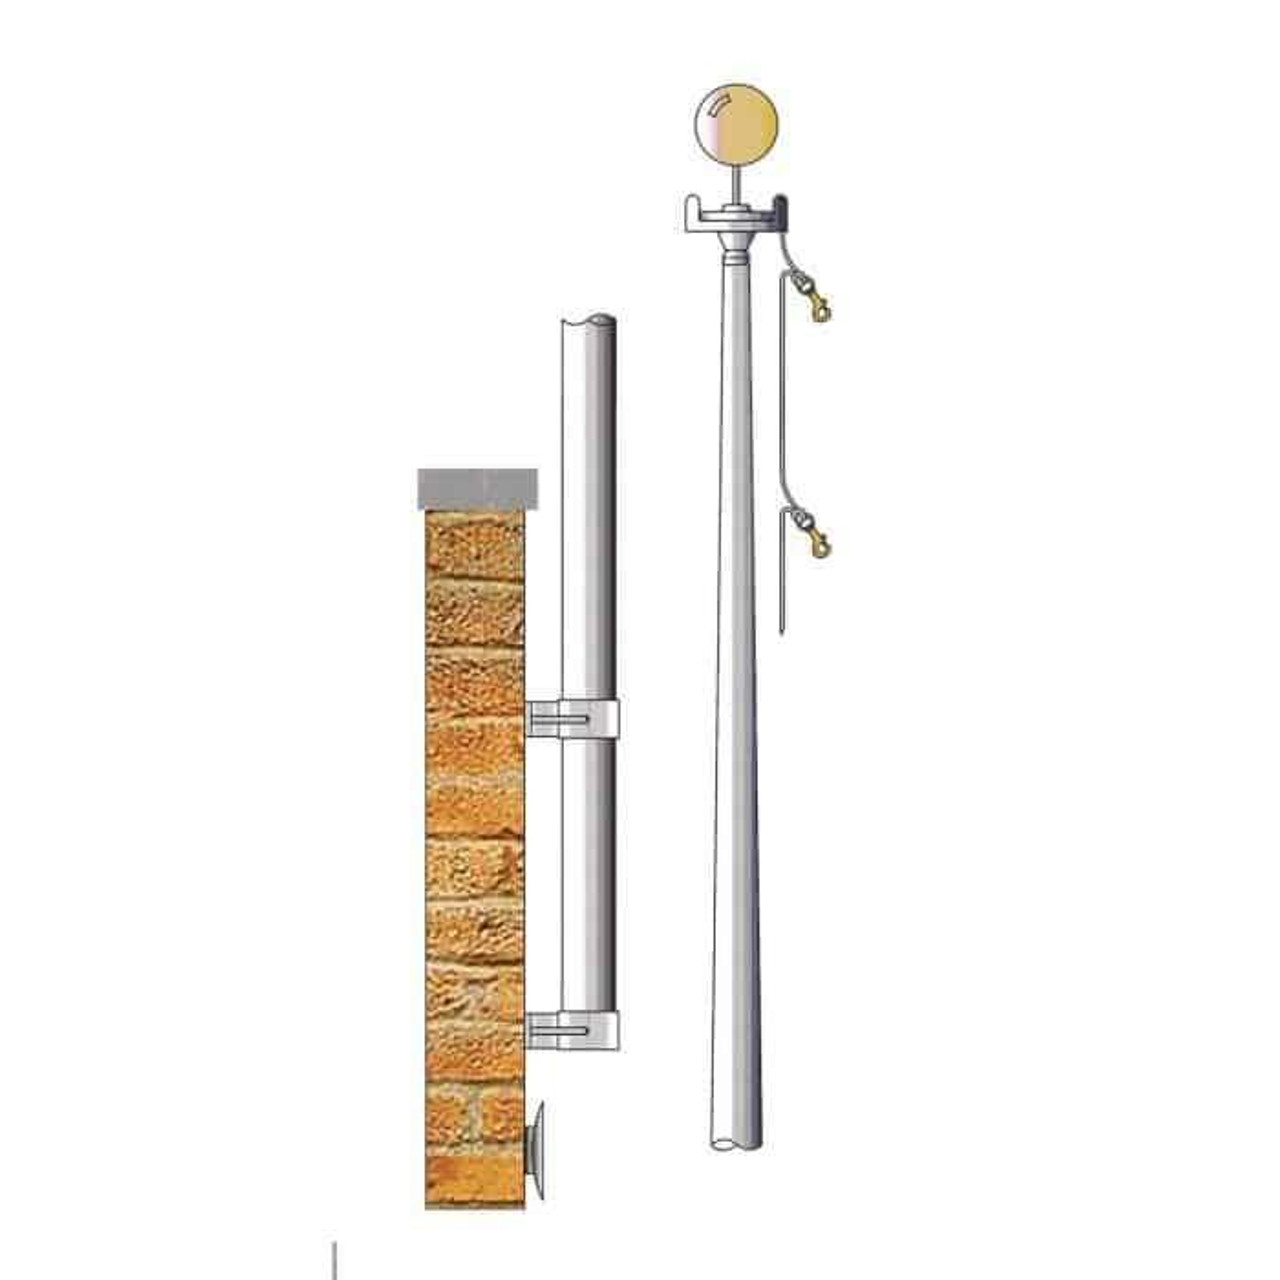 33 Vertical Wall Mounted Flagpole LVW33